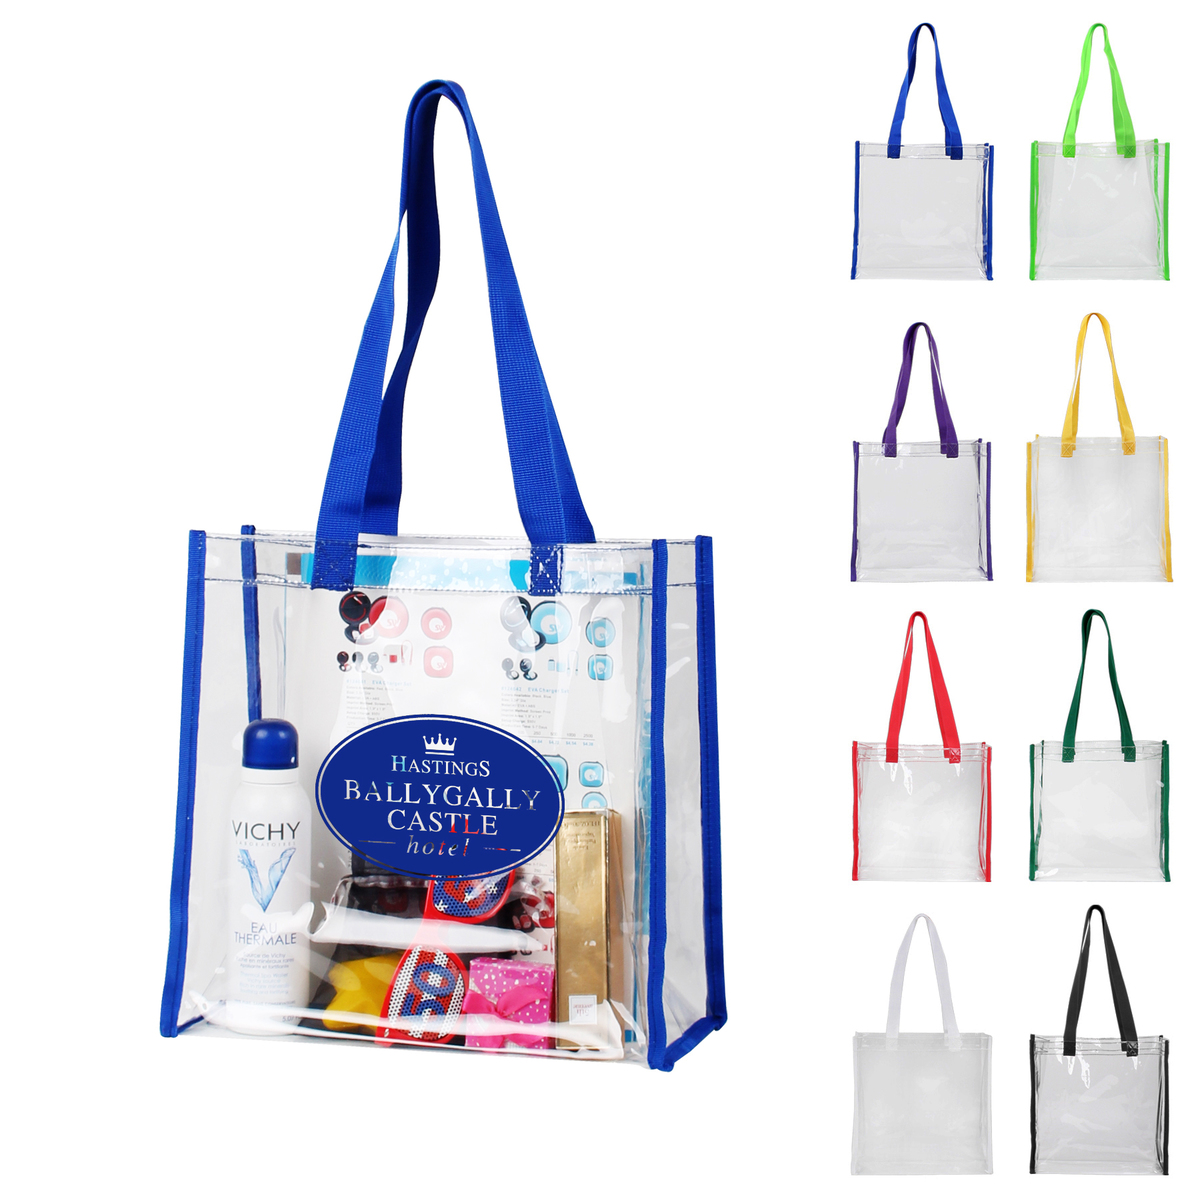 PVC Clear Tote Bags